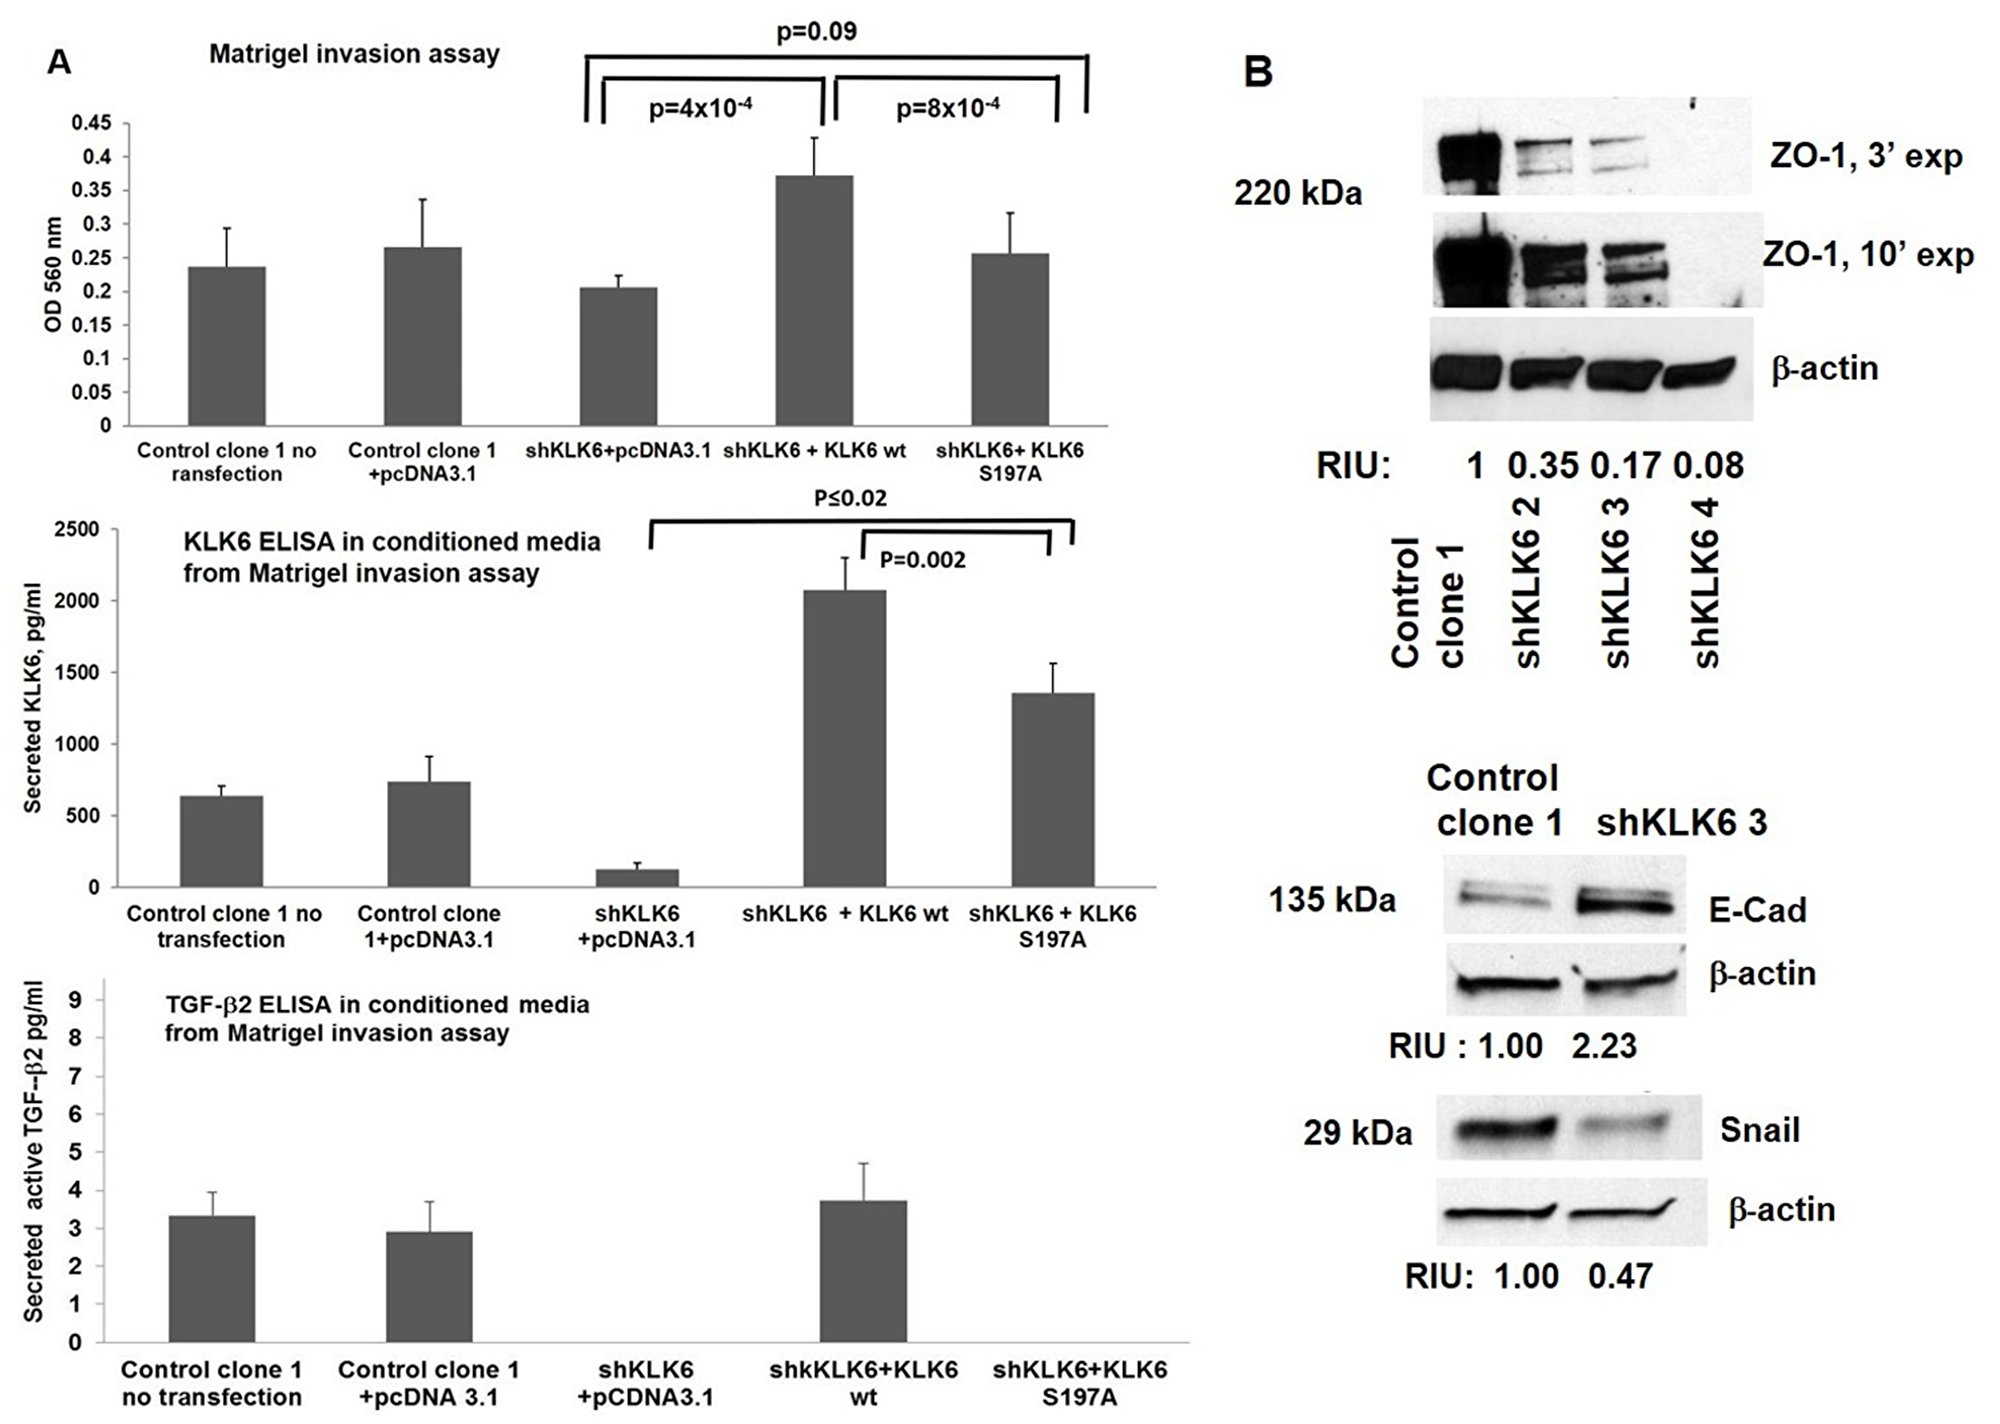 KLK6 enzyme contributes to cell invasion in HCT116-shKLK6 model through induction of the EMT.